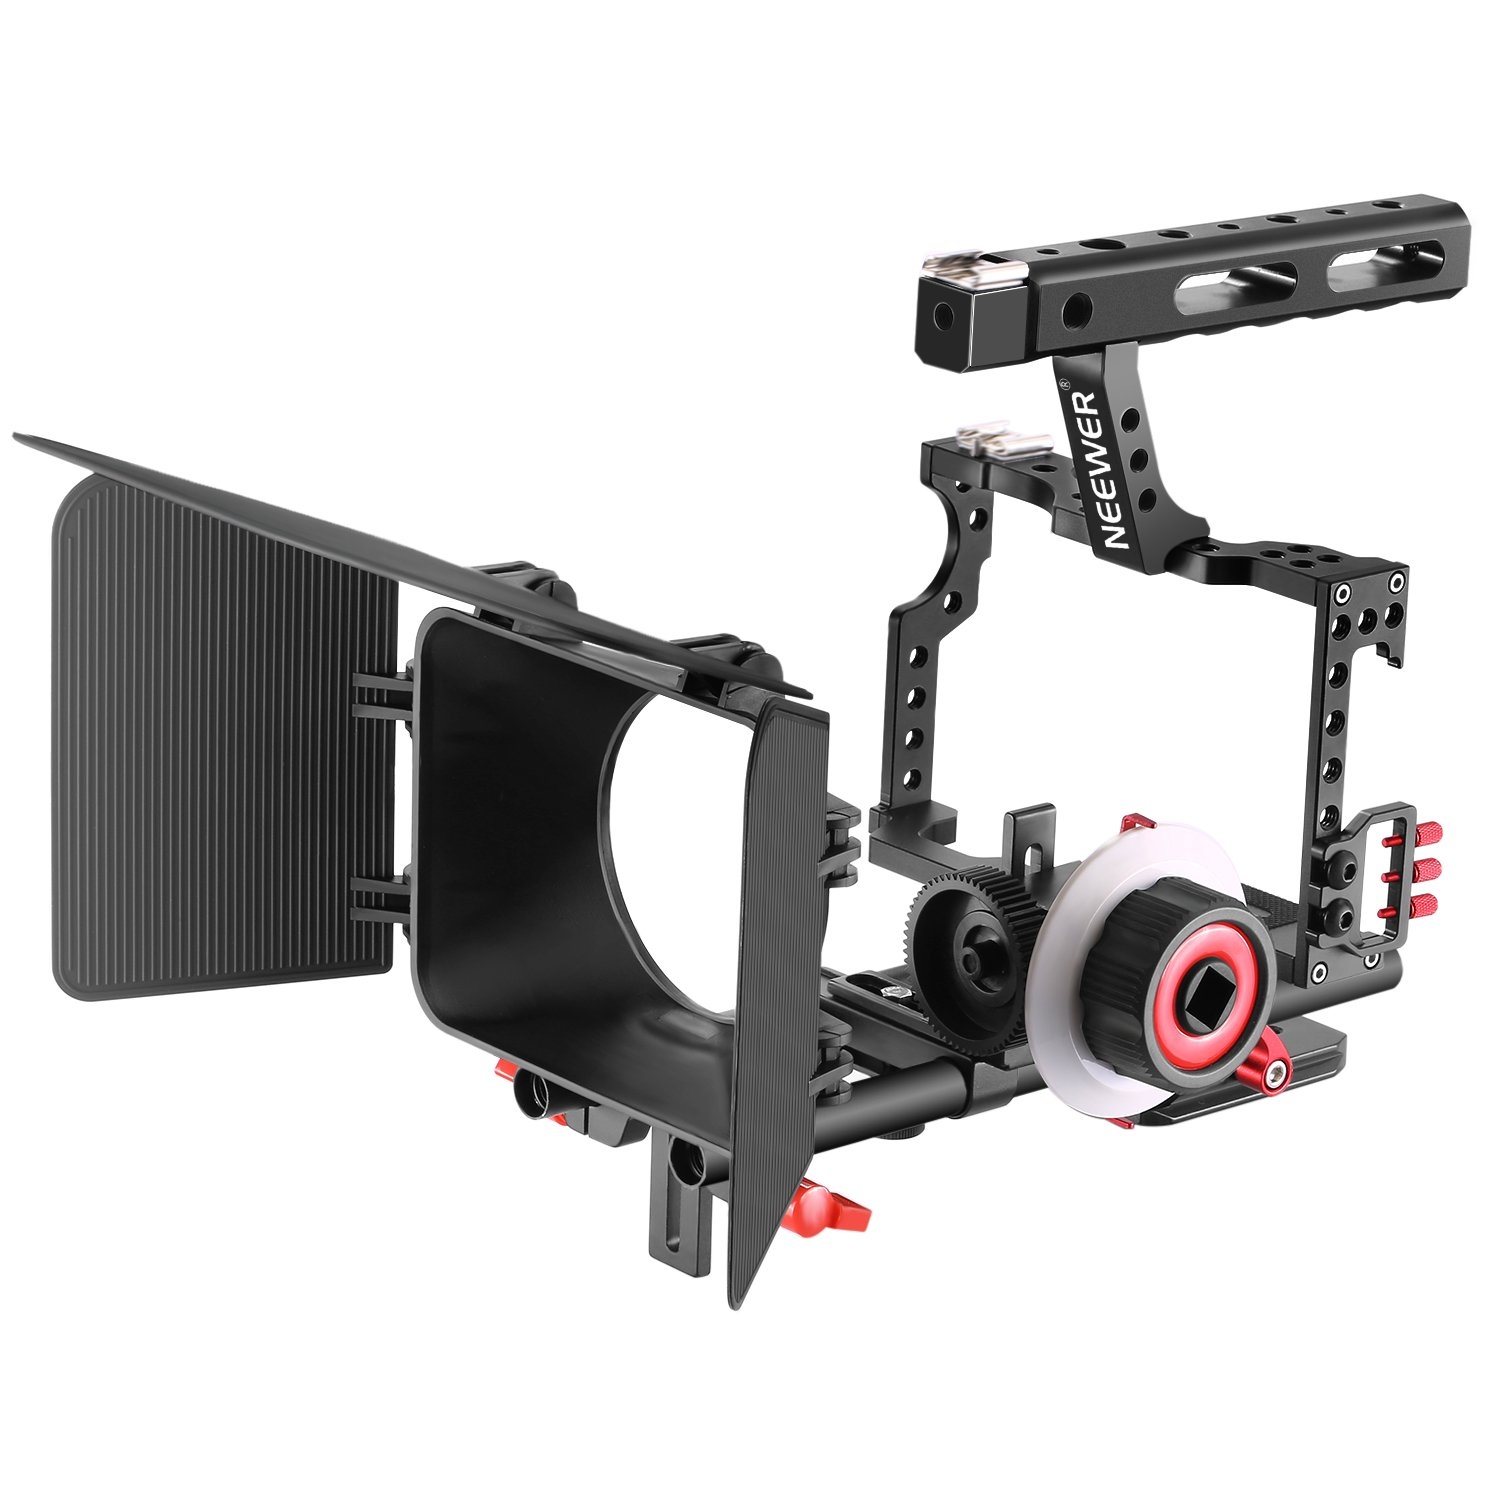 ddfd5f985 Get Quotations · Neewer Film Movie Making Camera Video Cage with 15mm Rail  Rods Matte Box, Follow Focus